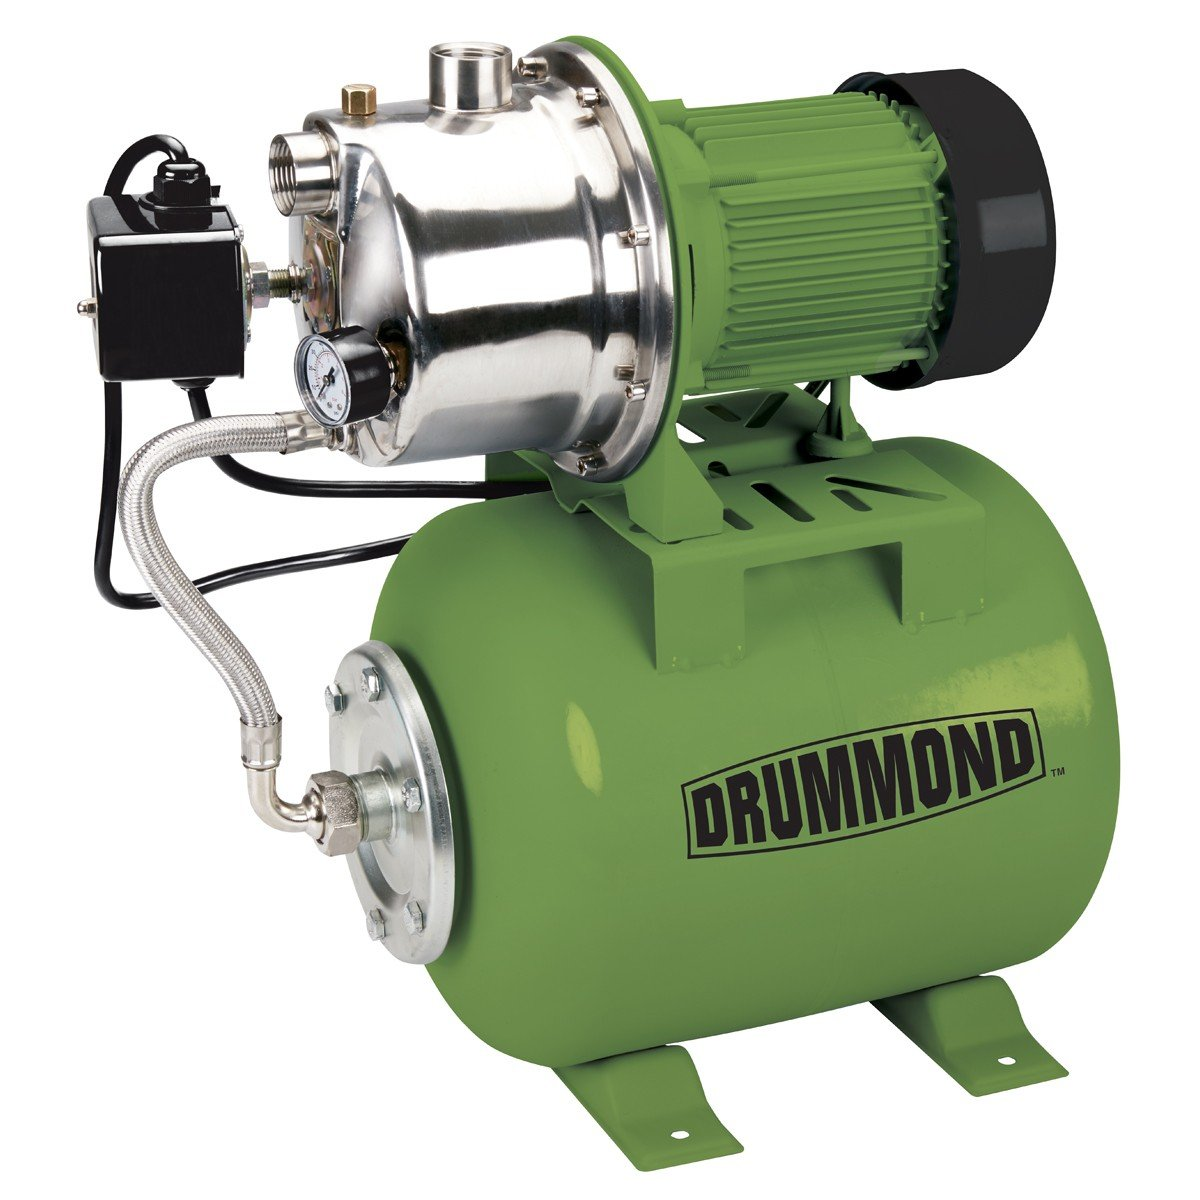 1 HP Stainless Steel Shallow Well Pump and Tank with Pressure Control Switch - 950 GPH by Drummond